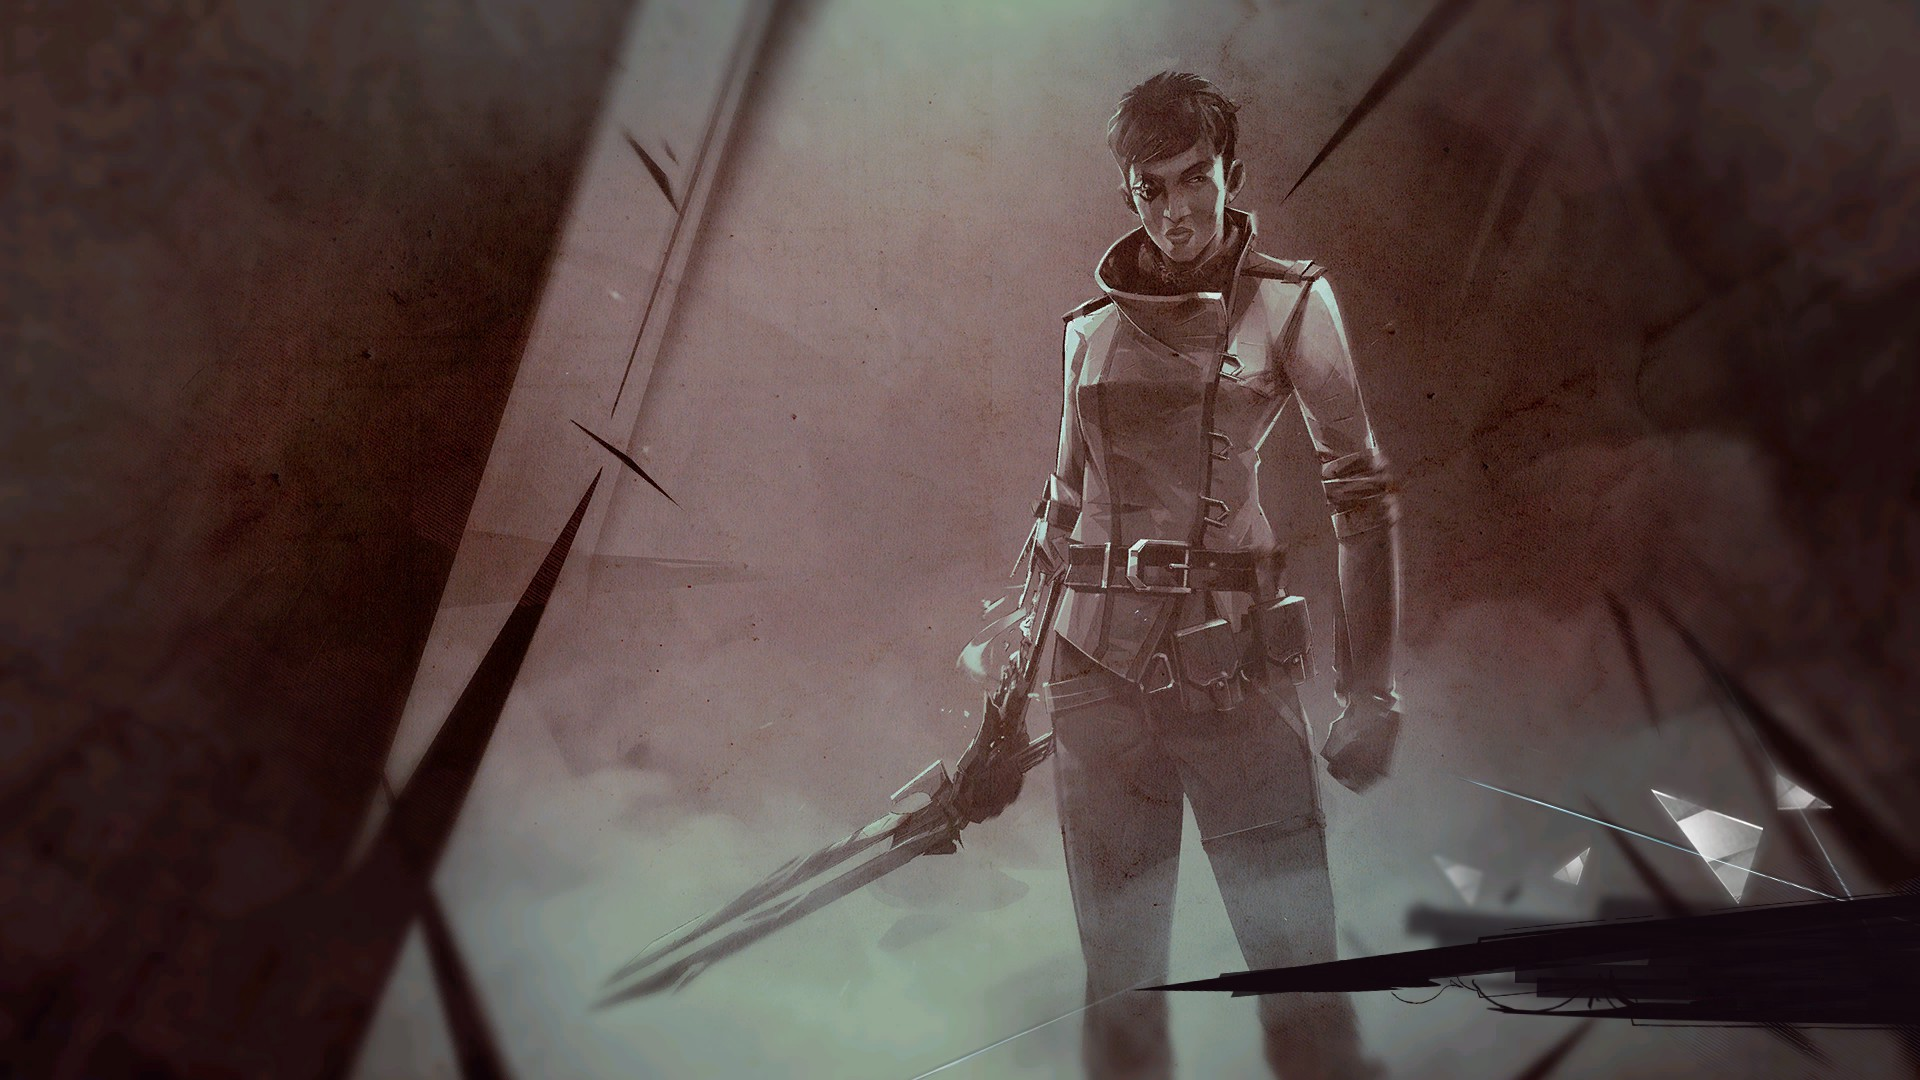 The Haunting Of Billie Lurk Queer Spectrality In The Dishonored